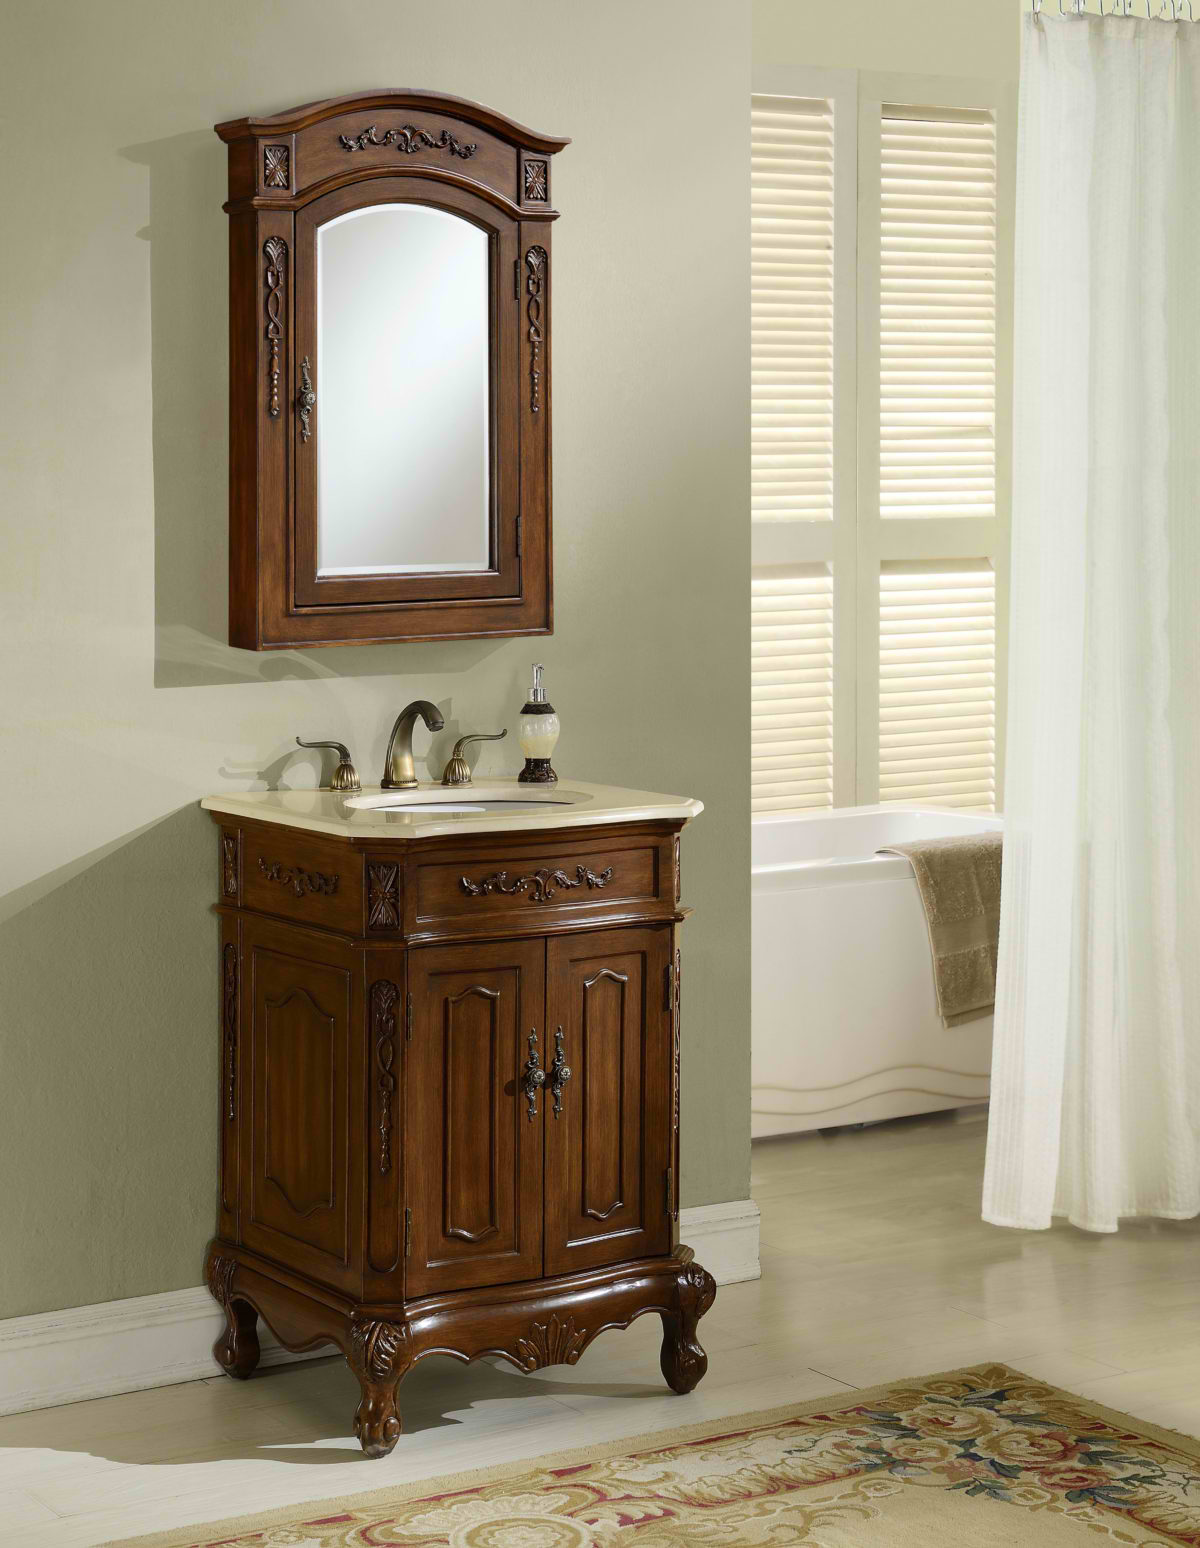 "24"" Antique Deep Chestnut Finish Vanity with Mirror, Med Cab, and Linen Cabinet Options"